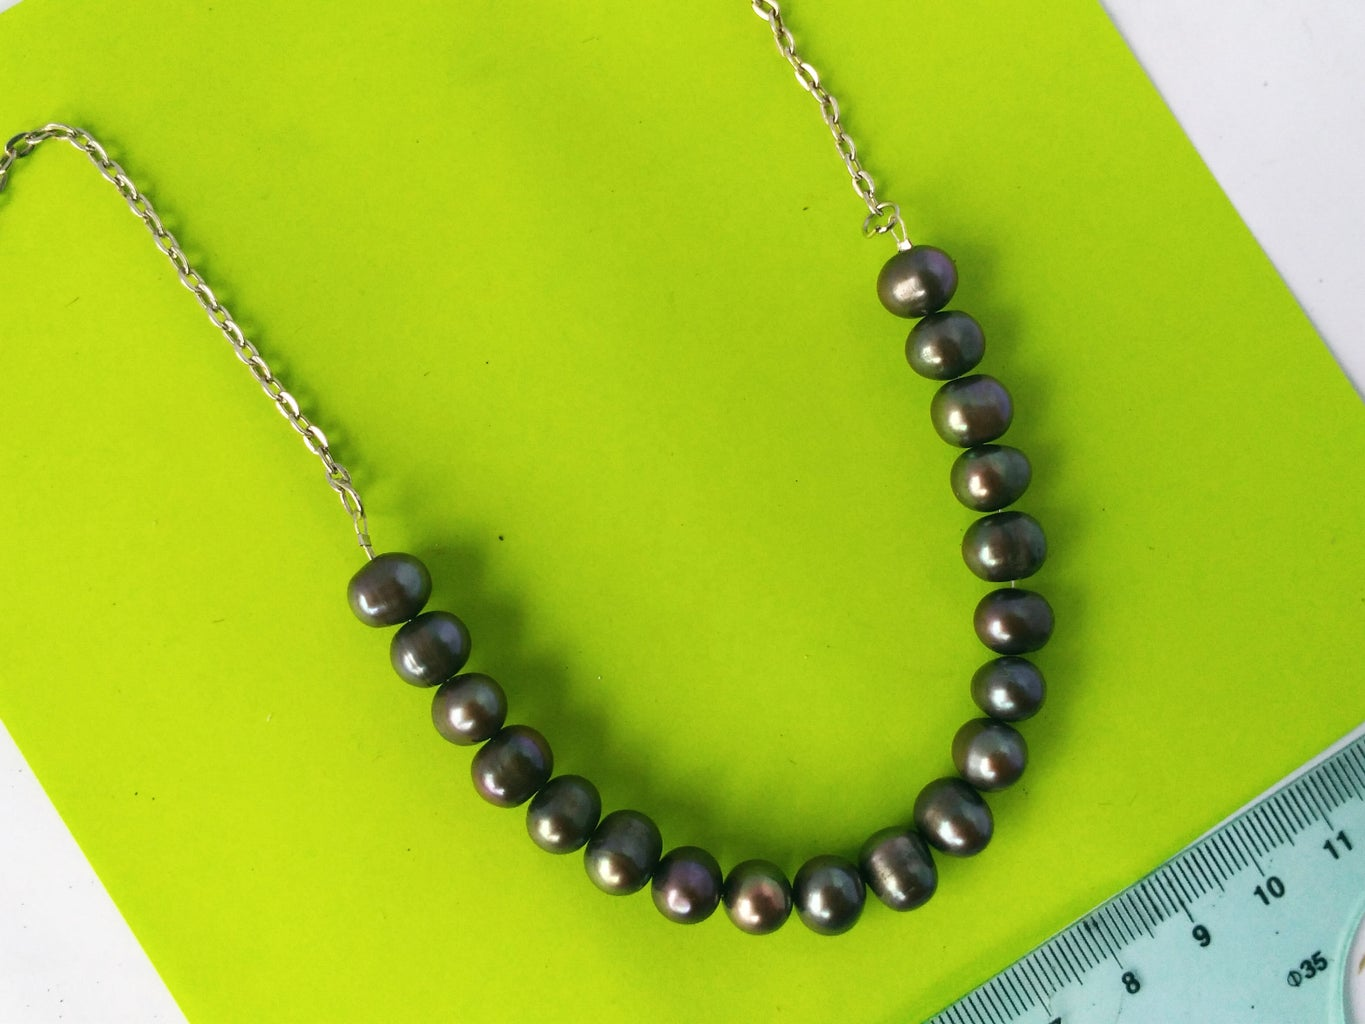 Add a Metal Chain to Complete the Necklace